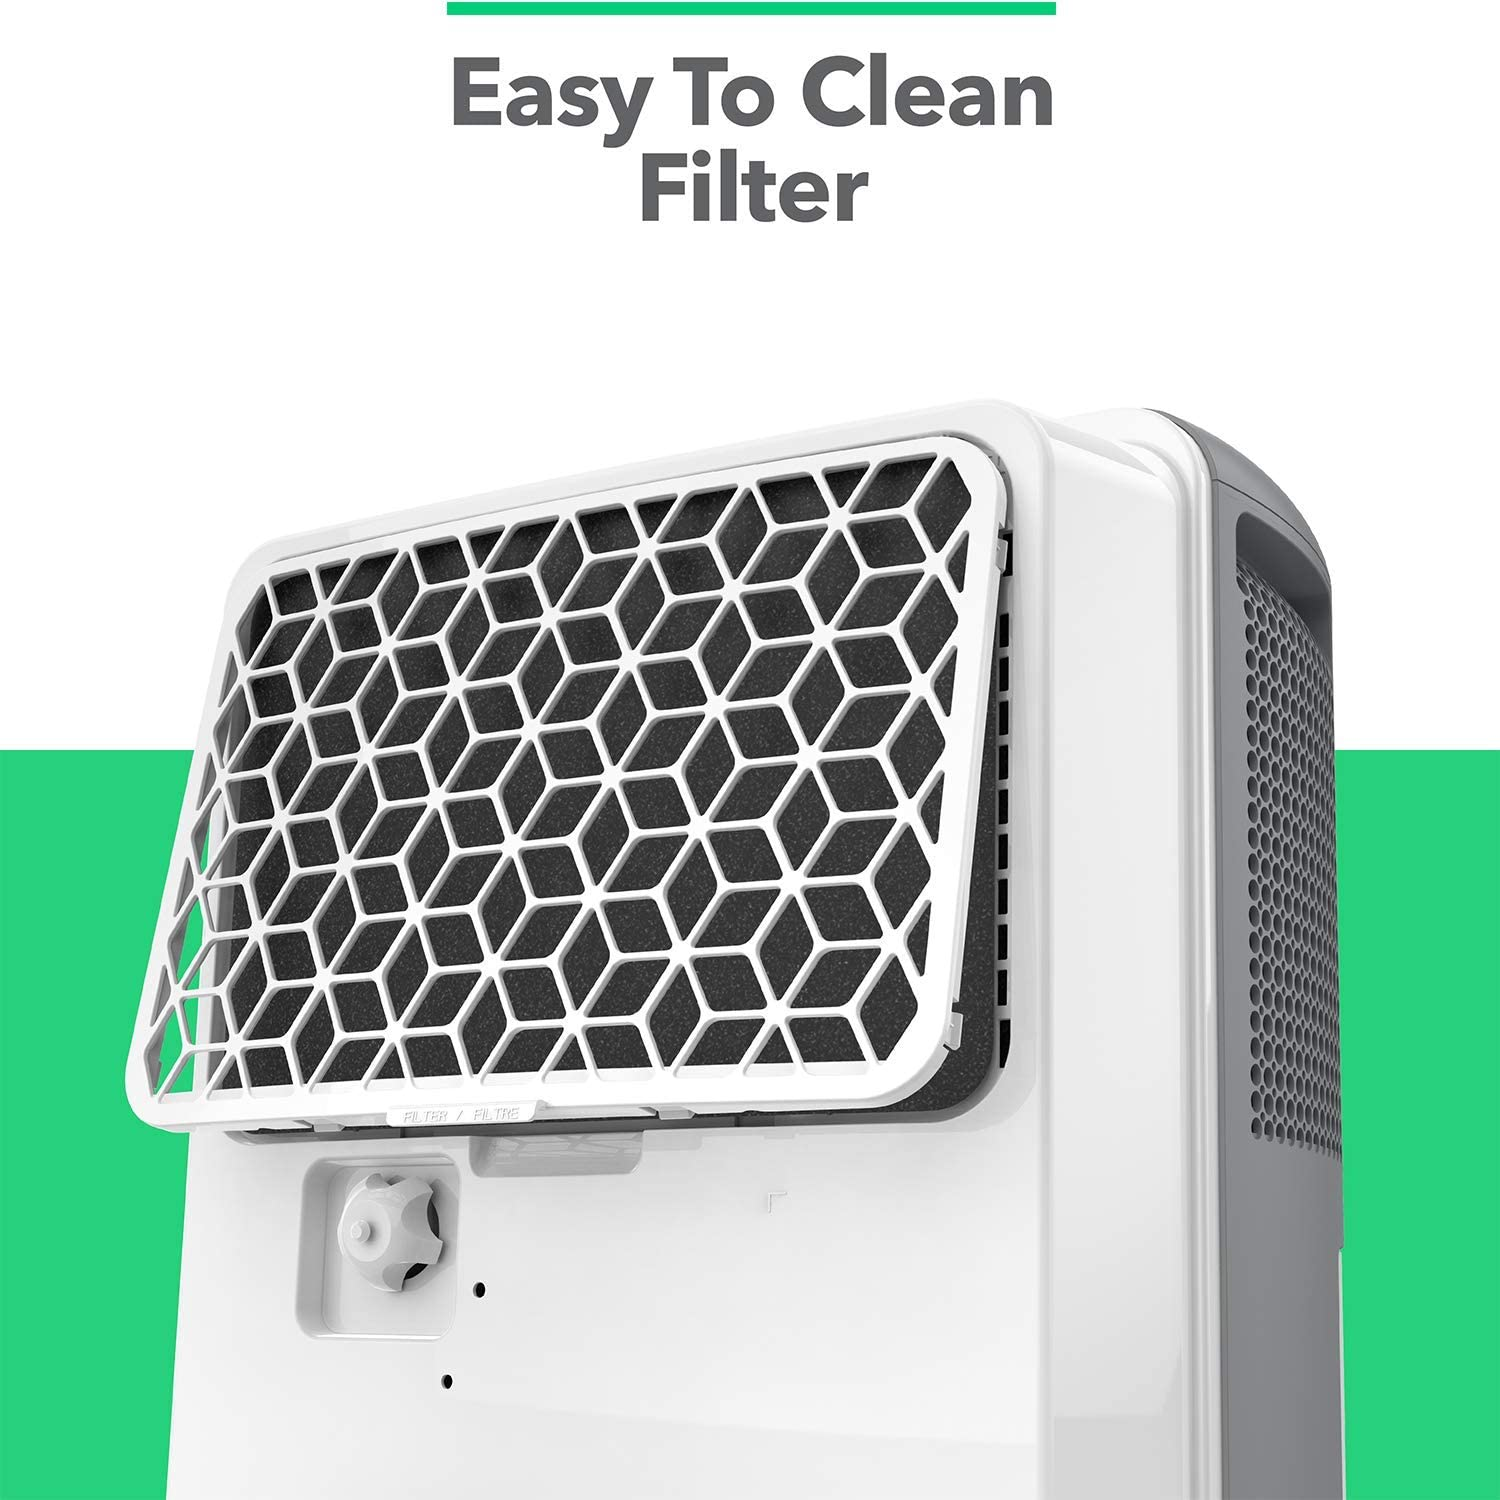 Vremi Dehumidifier 50 Pint 4,500 Sq. Ft.  | Easy to Clean Filter